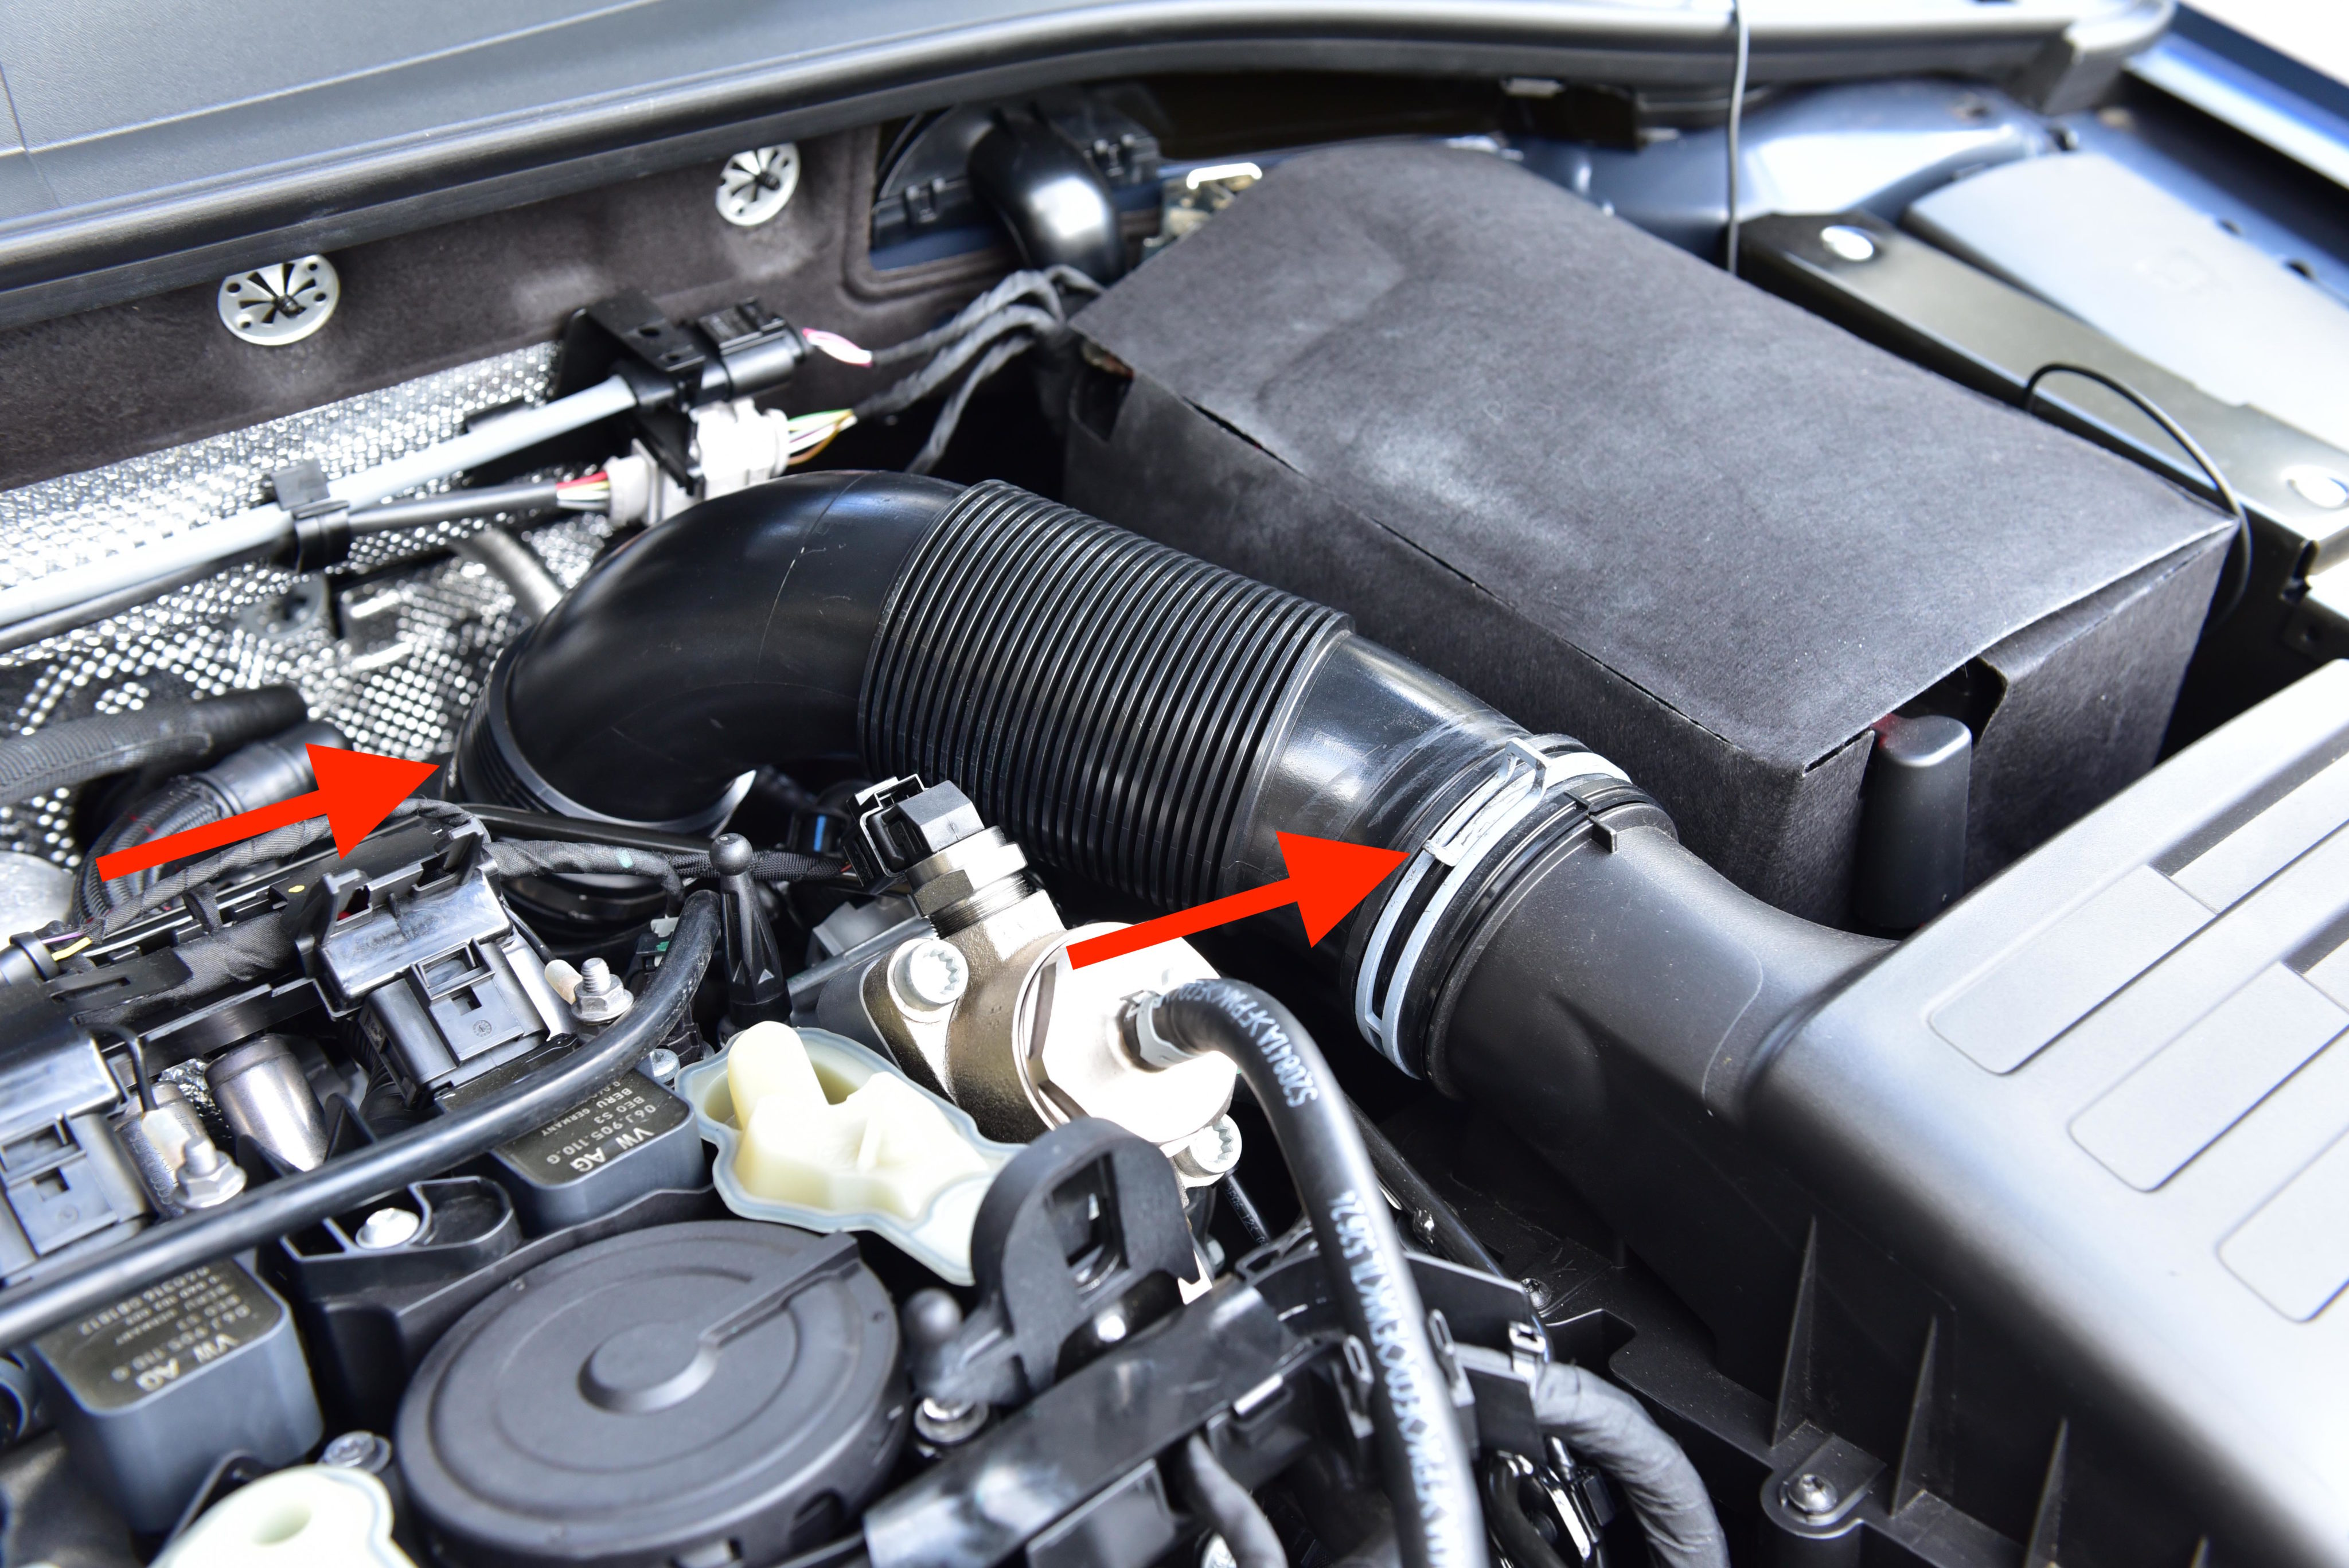 Intake Pipe and Turbo Inlet Removal – MK7 Golf R / GTI EA888